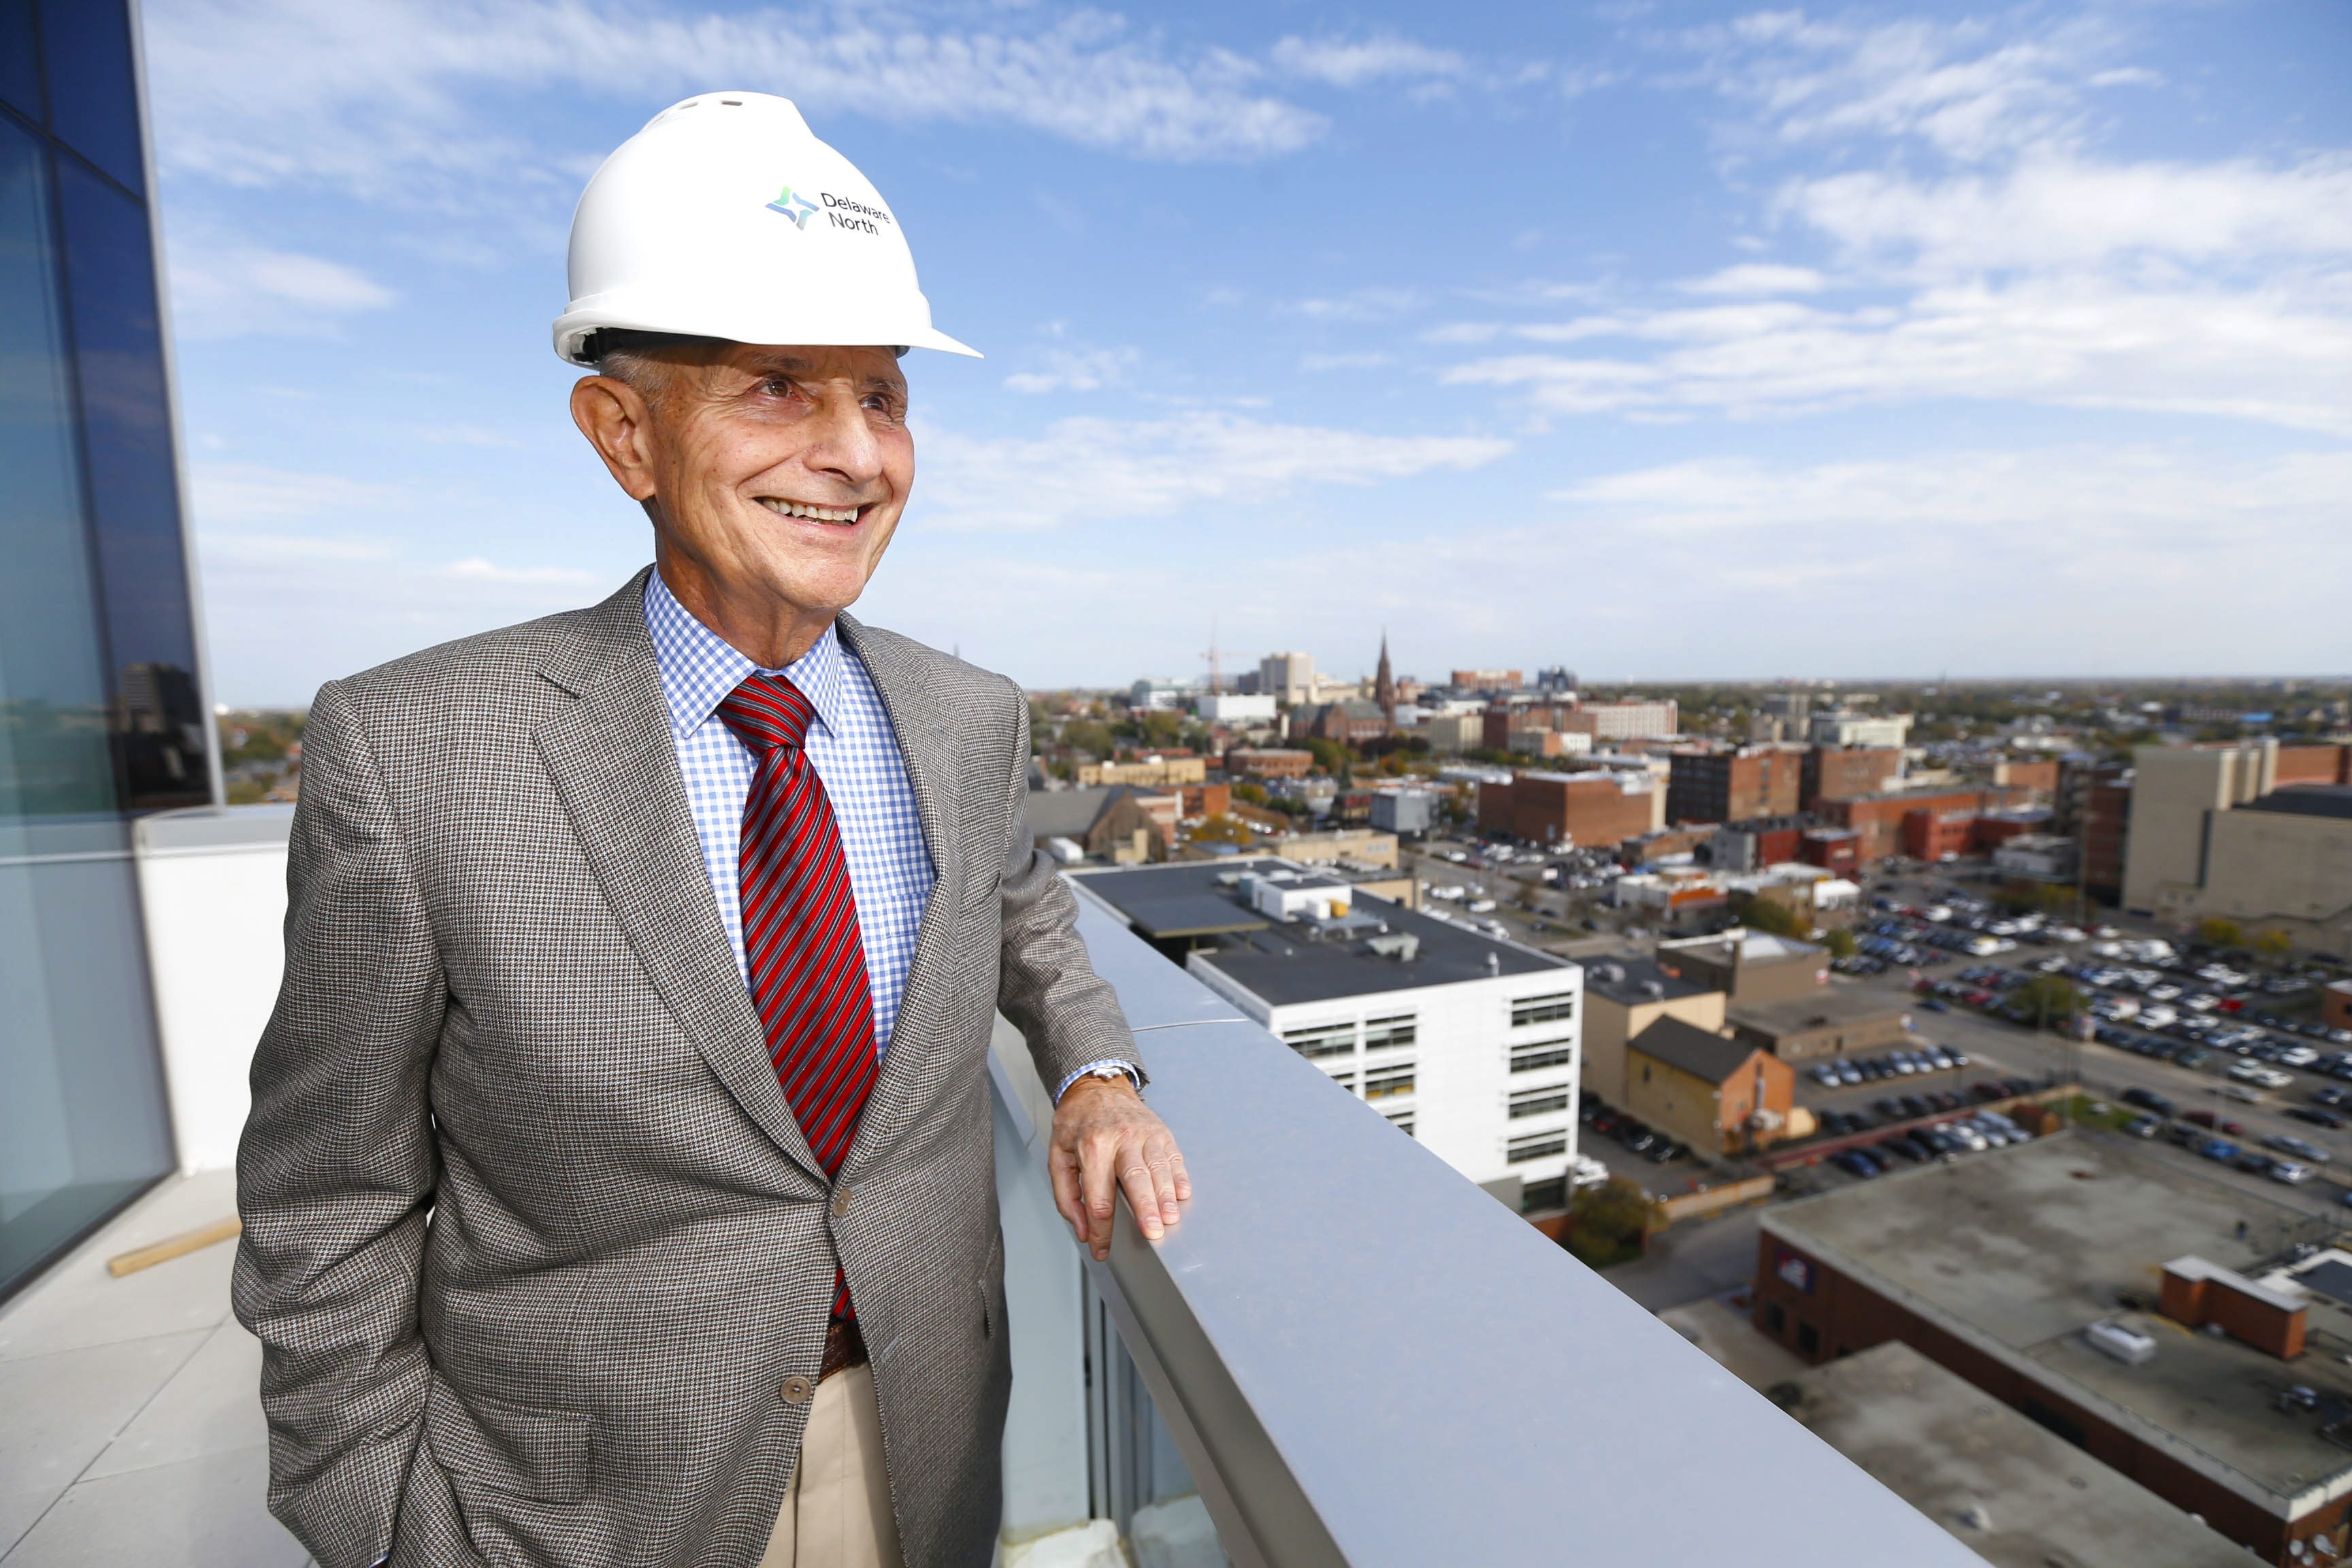 Delaware North Chairman Jeremy Jacobs Sr. tours the site of the new Delaware North building in Buffalo in October 2015.  (Robert Kirkham/Buffalo News file photo)